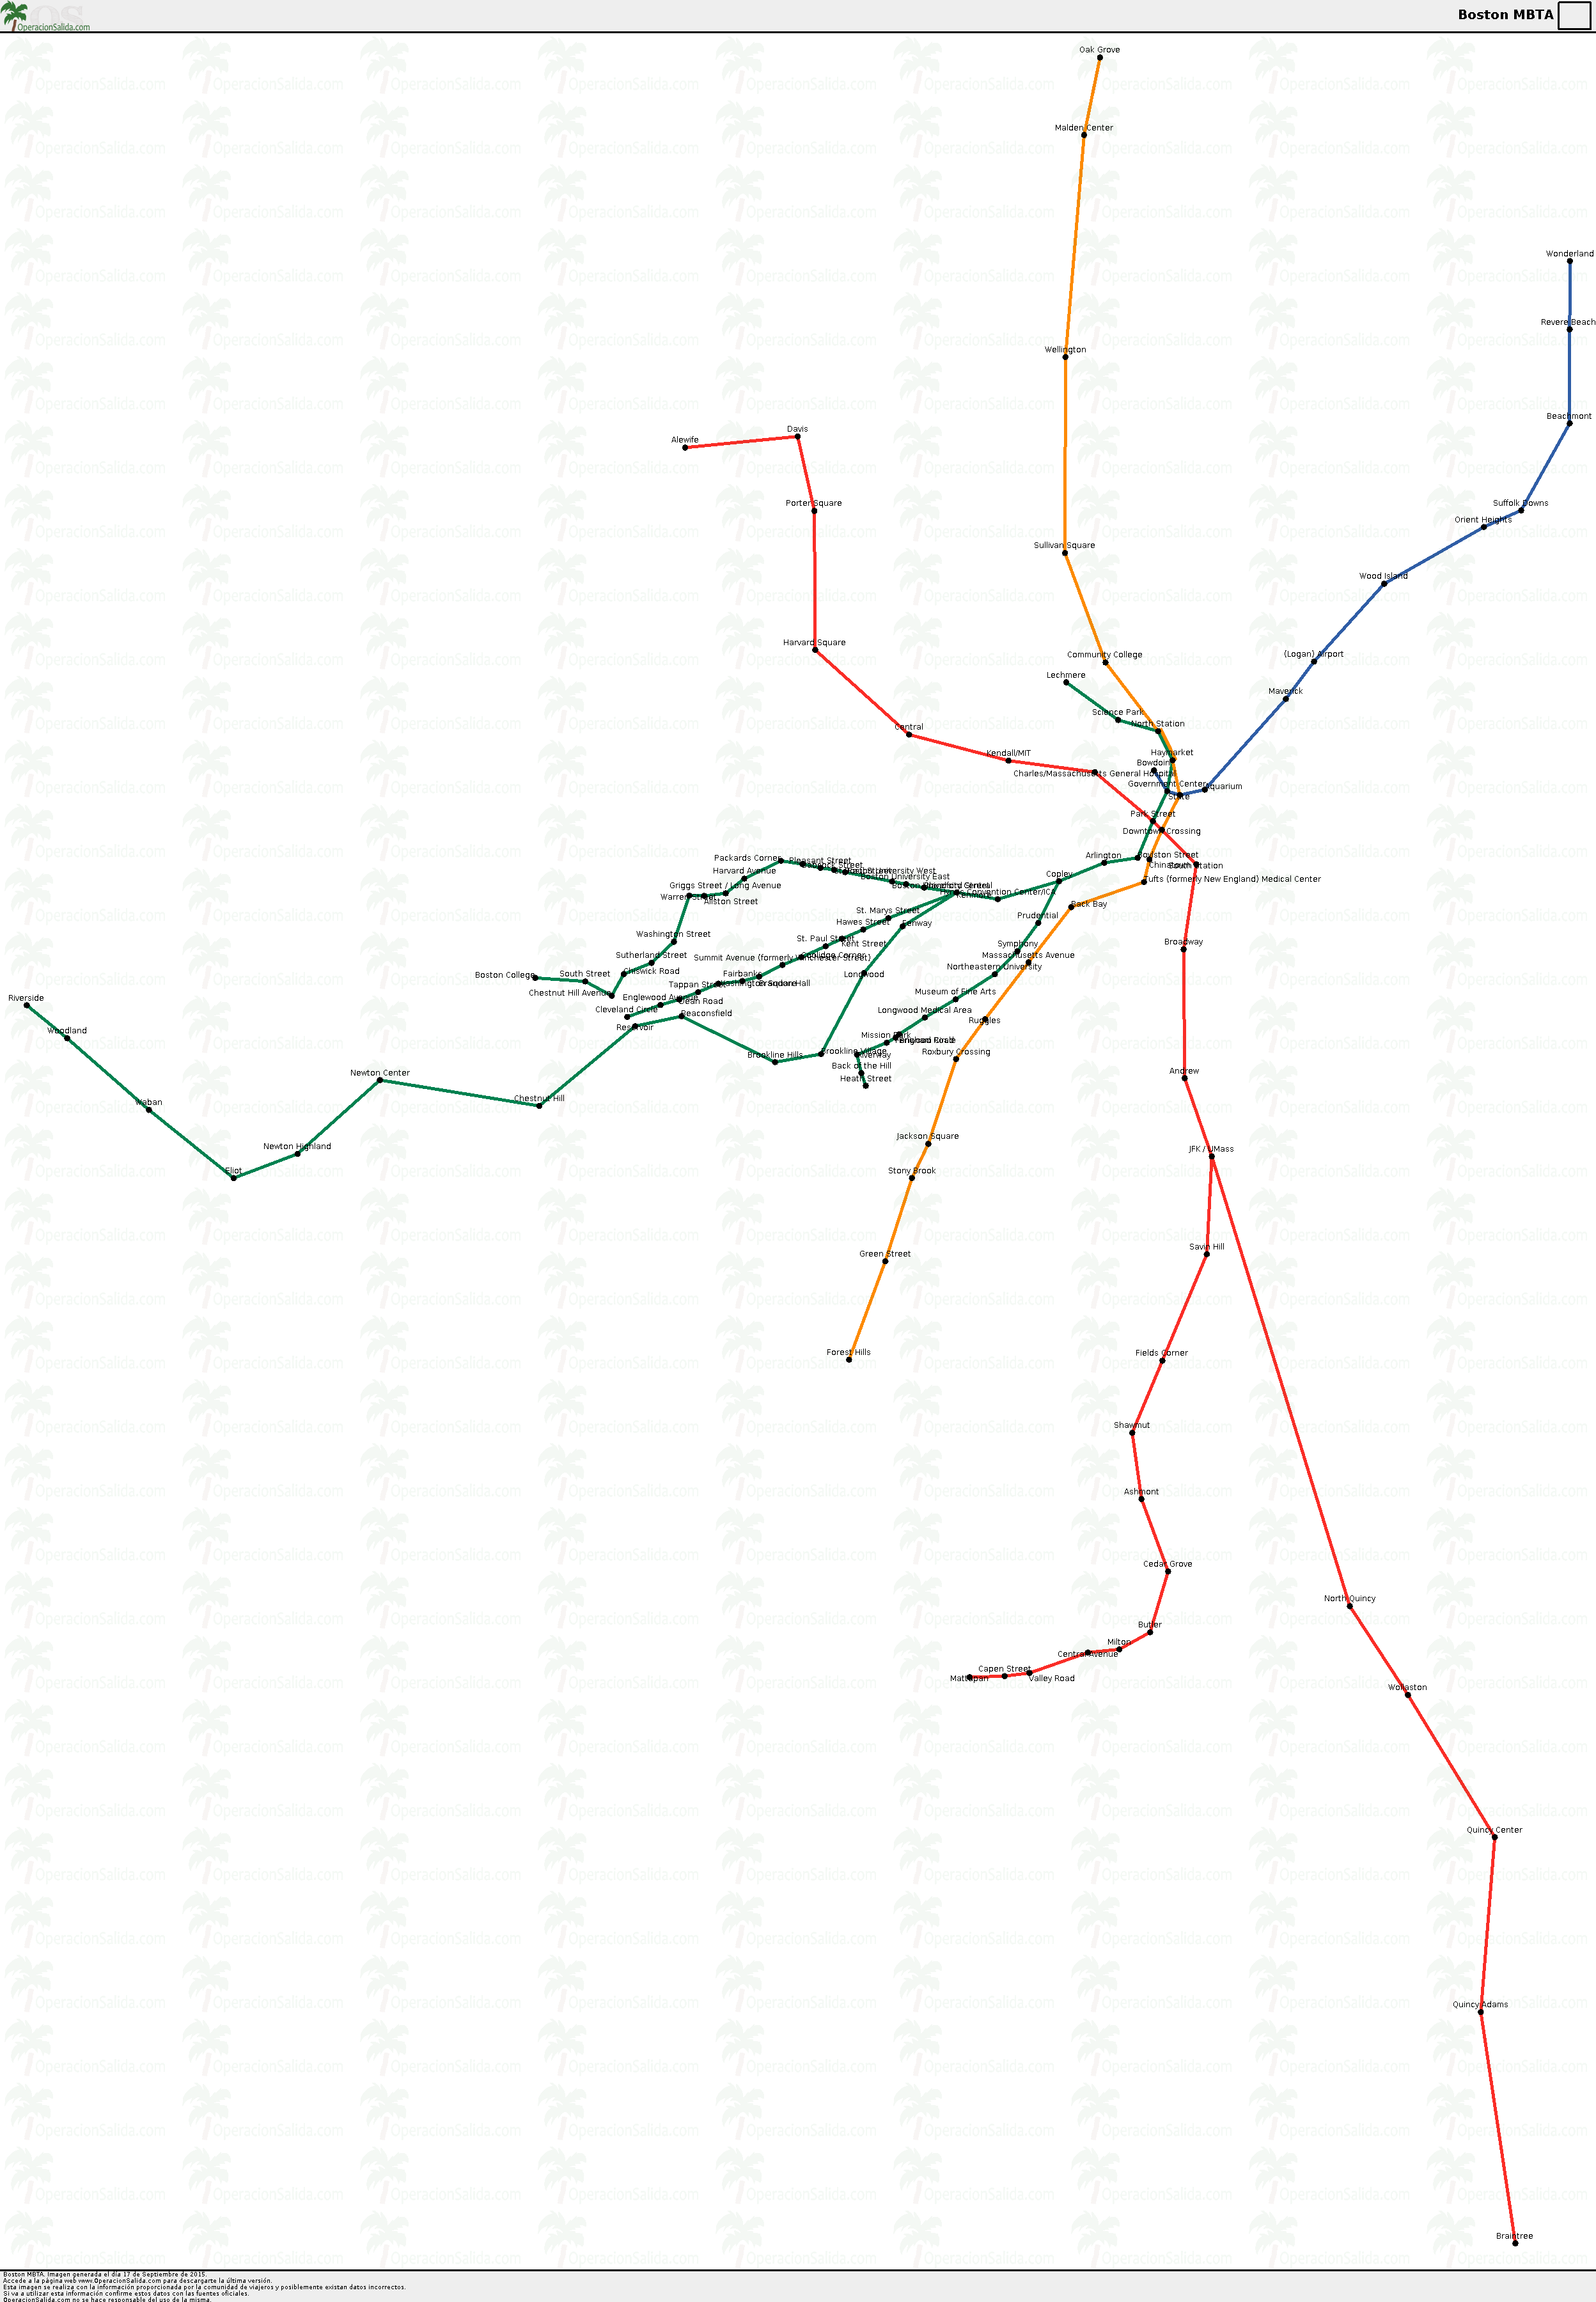 Mapa metro Boston MBTA